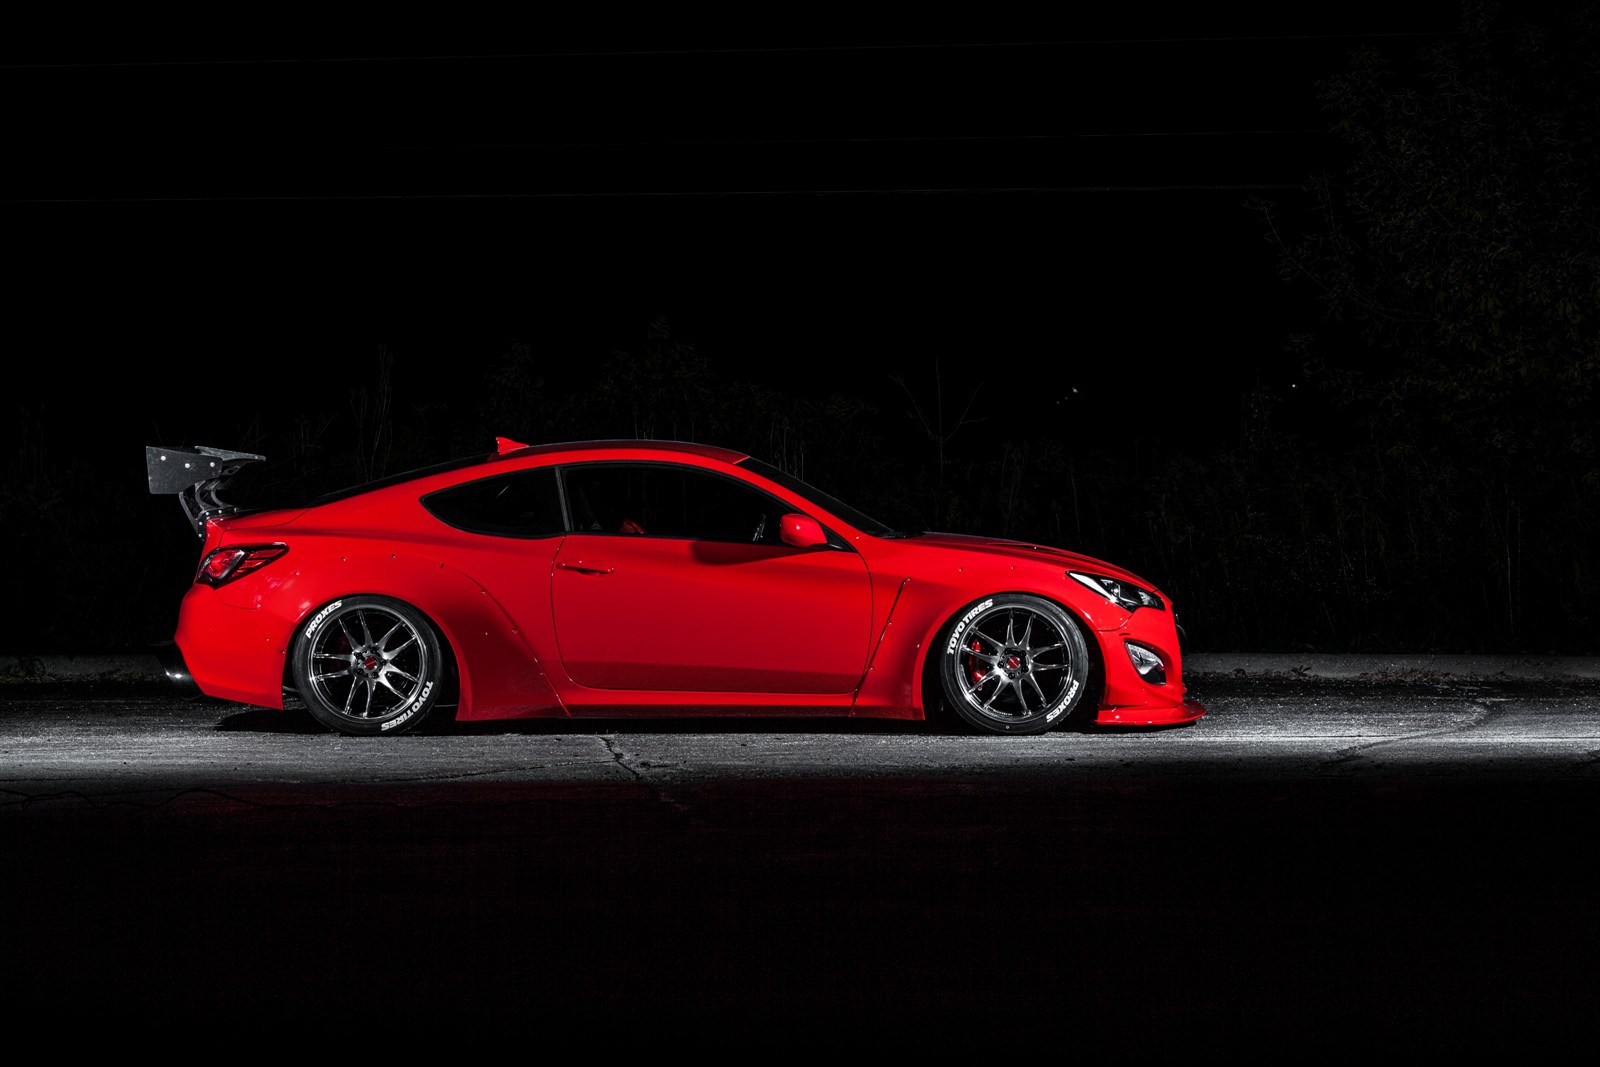 Hyundai teams up with blood type racing to debut underground racing genesis at sema show the - Hyundai genesis coupe motor ...